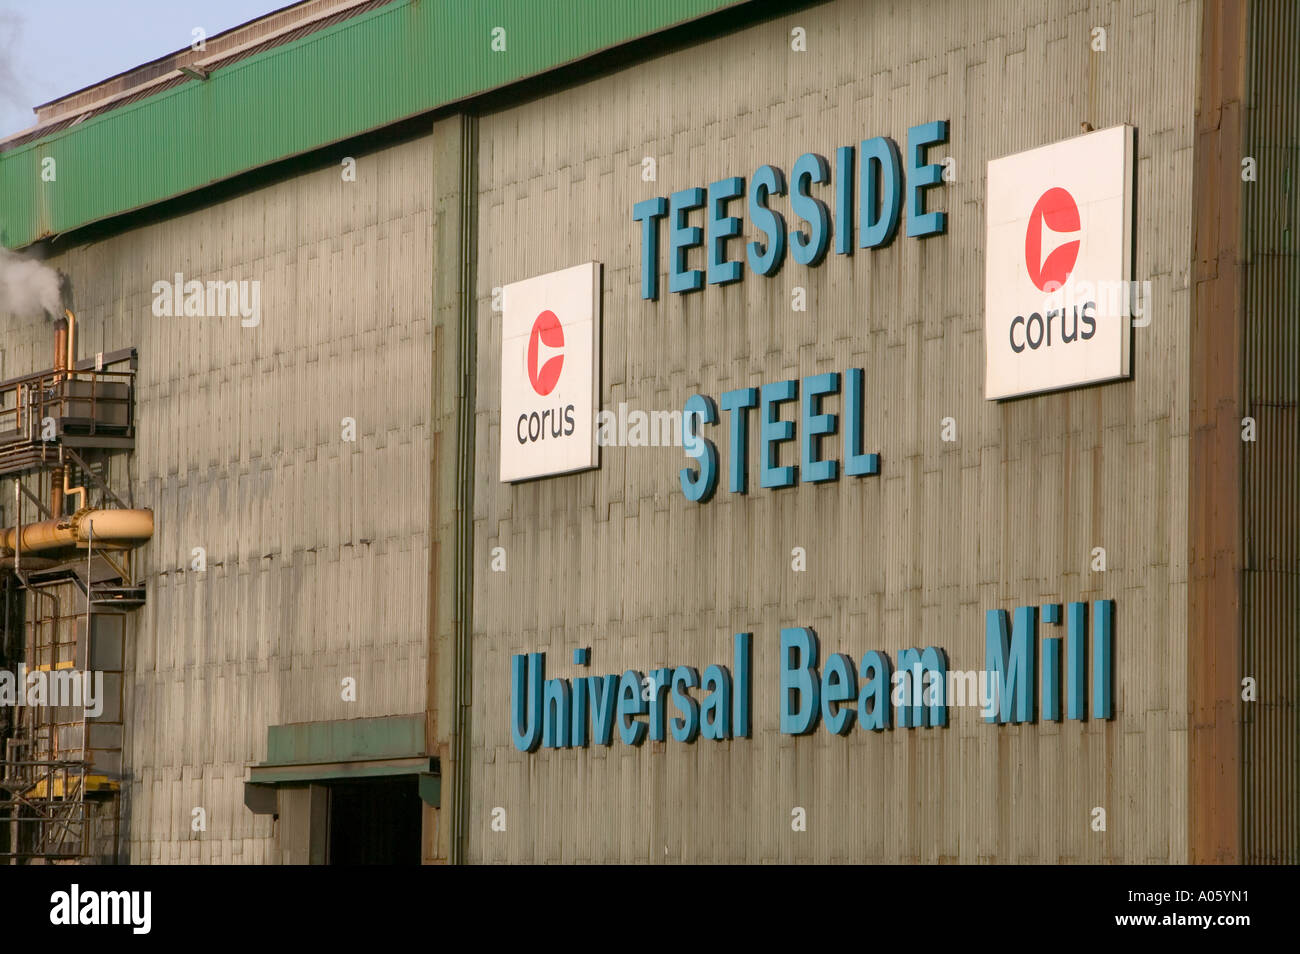 The Corus steelworks at Redcar, teeside, England - Stock Image